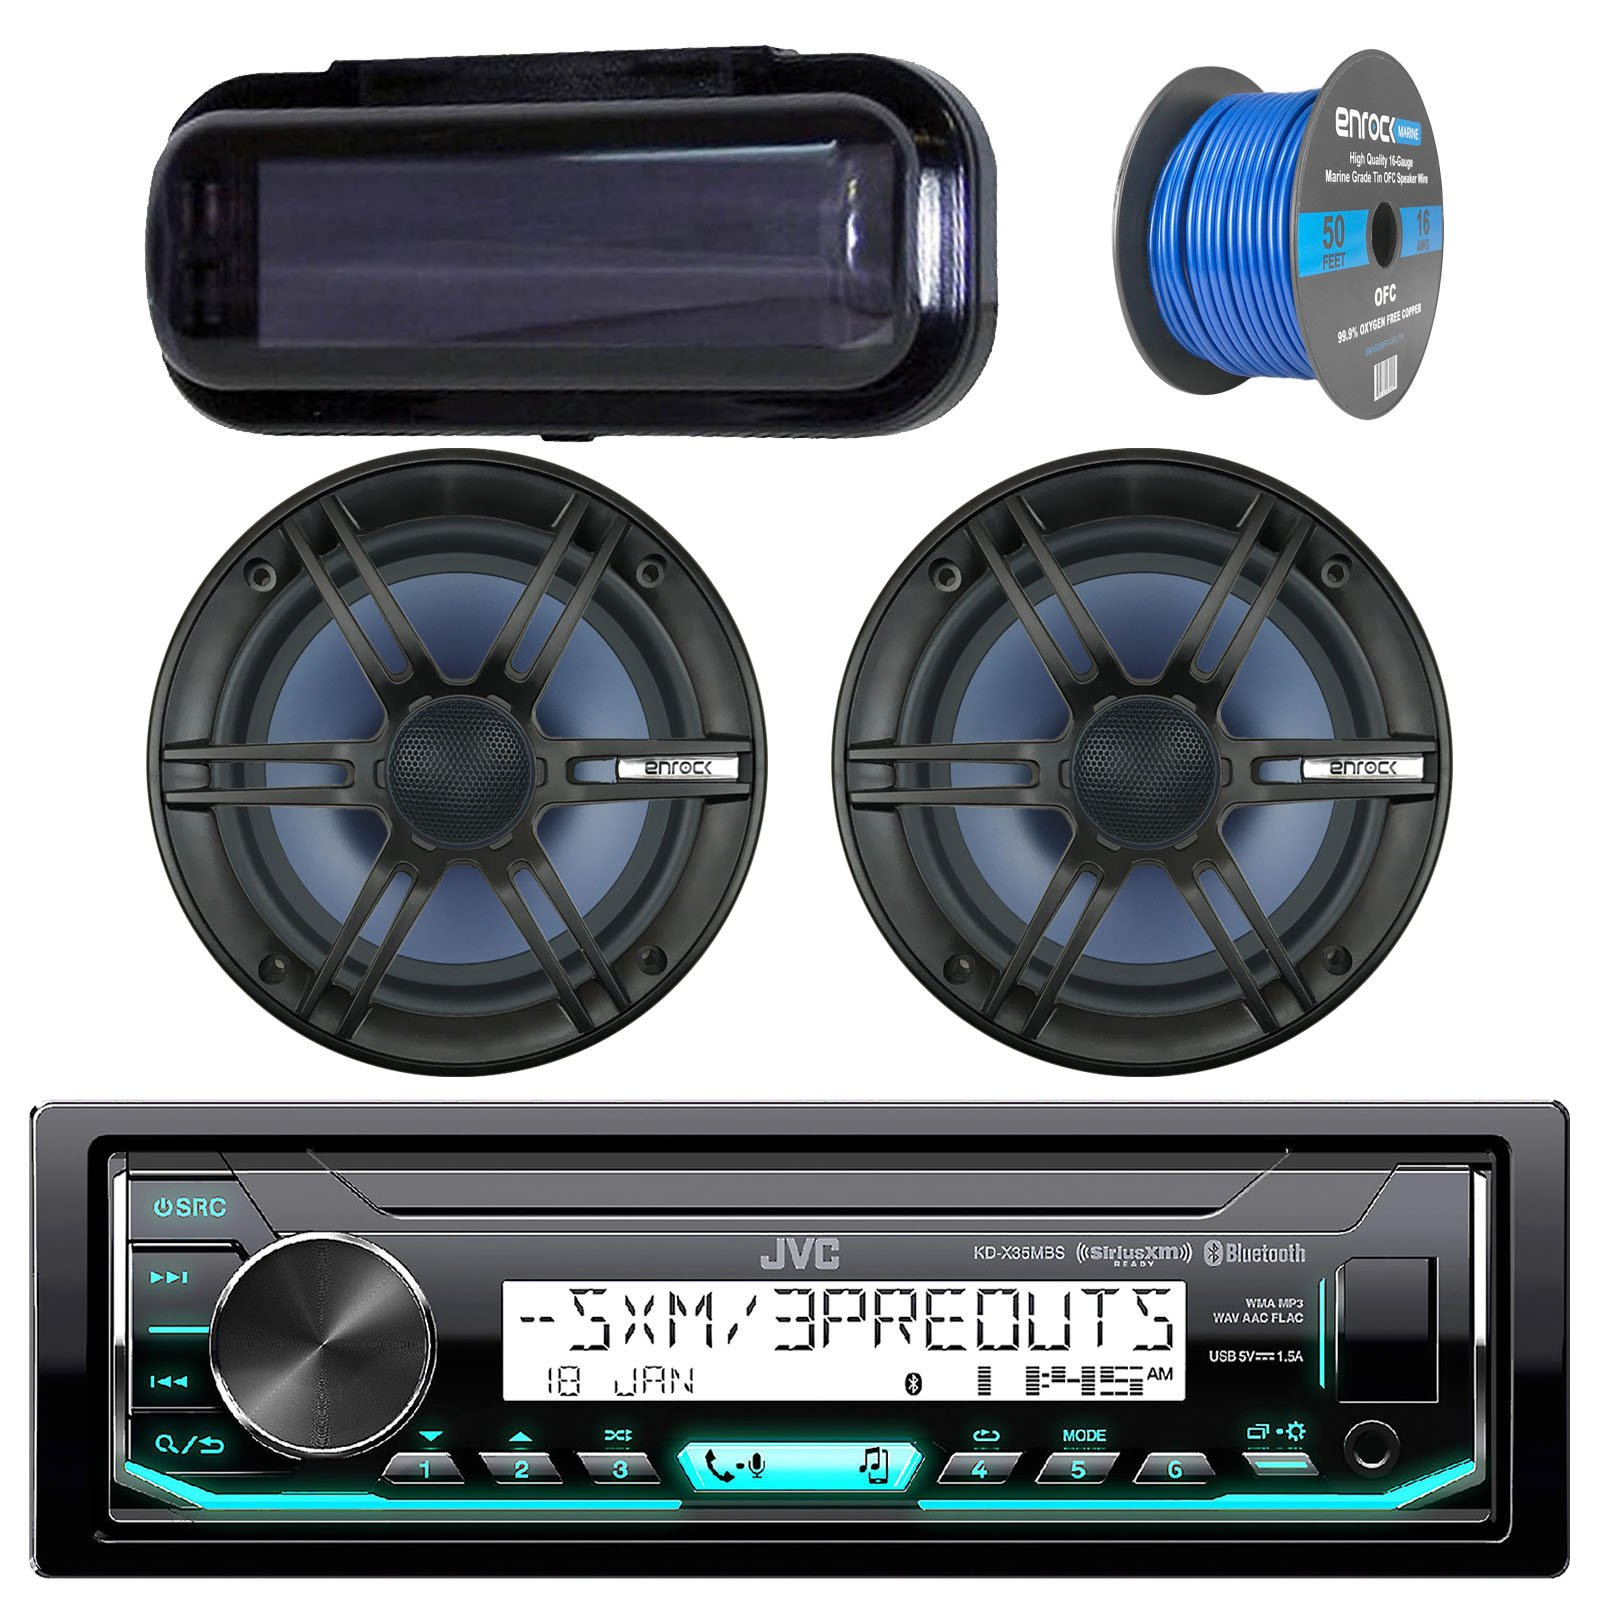 JVC In-Dash Marine Boat Bluetooth Radio USB Receiver Bundle Combo with Pair of Enrock 6.5'' Black Dual-Cone Stereo Speakers, Stereo Waterproof Cover, 18g 50ft Marine Speaker Wire by JVC